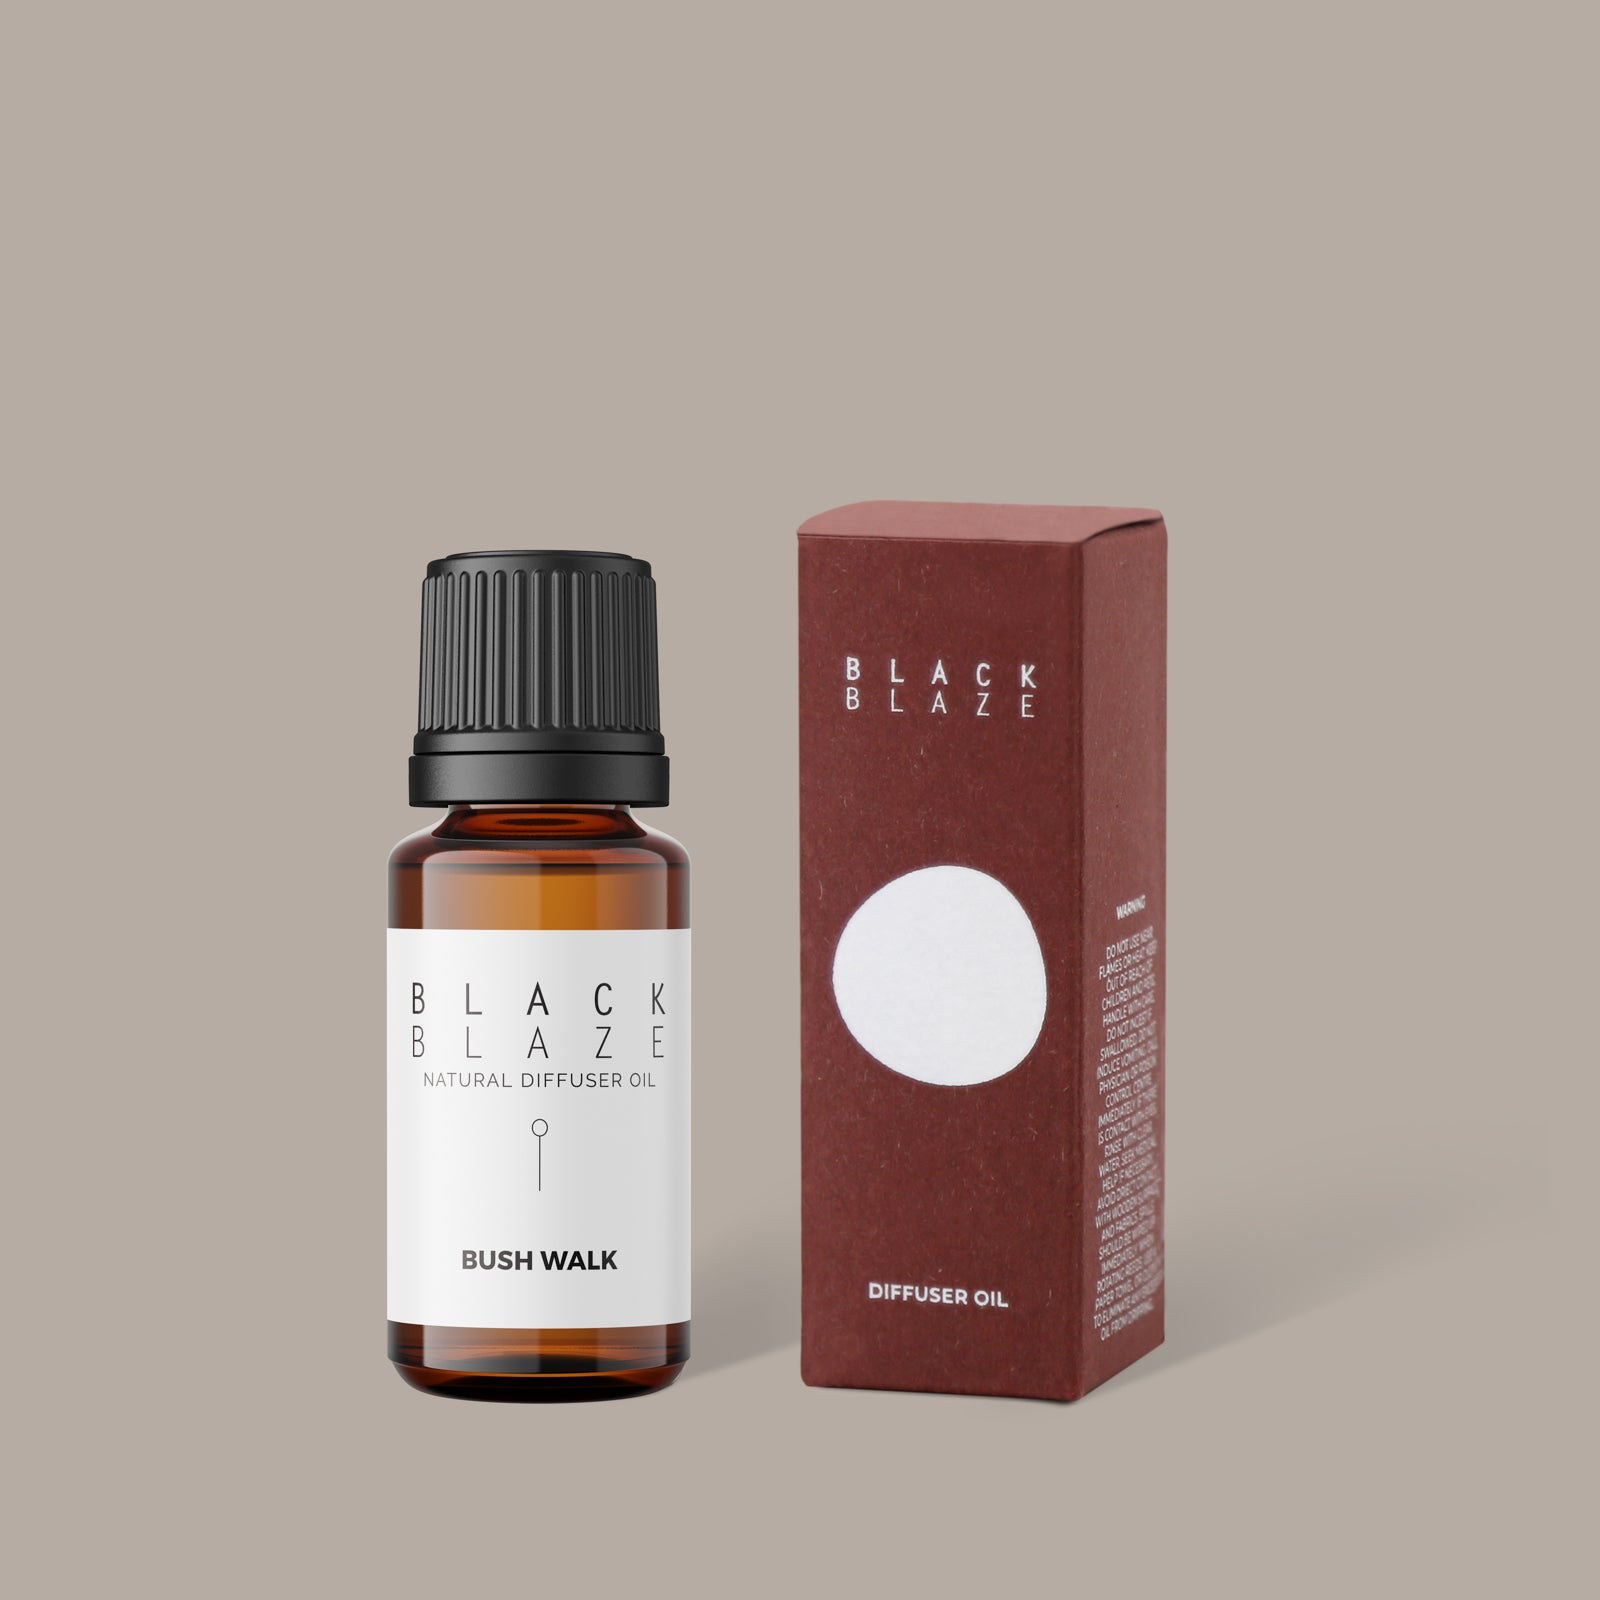 BUSH WALK Diffuser Oil